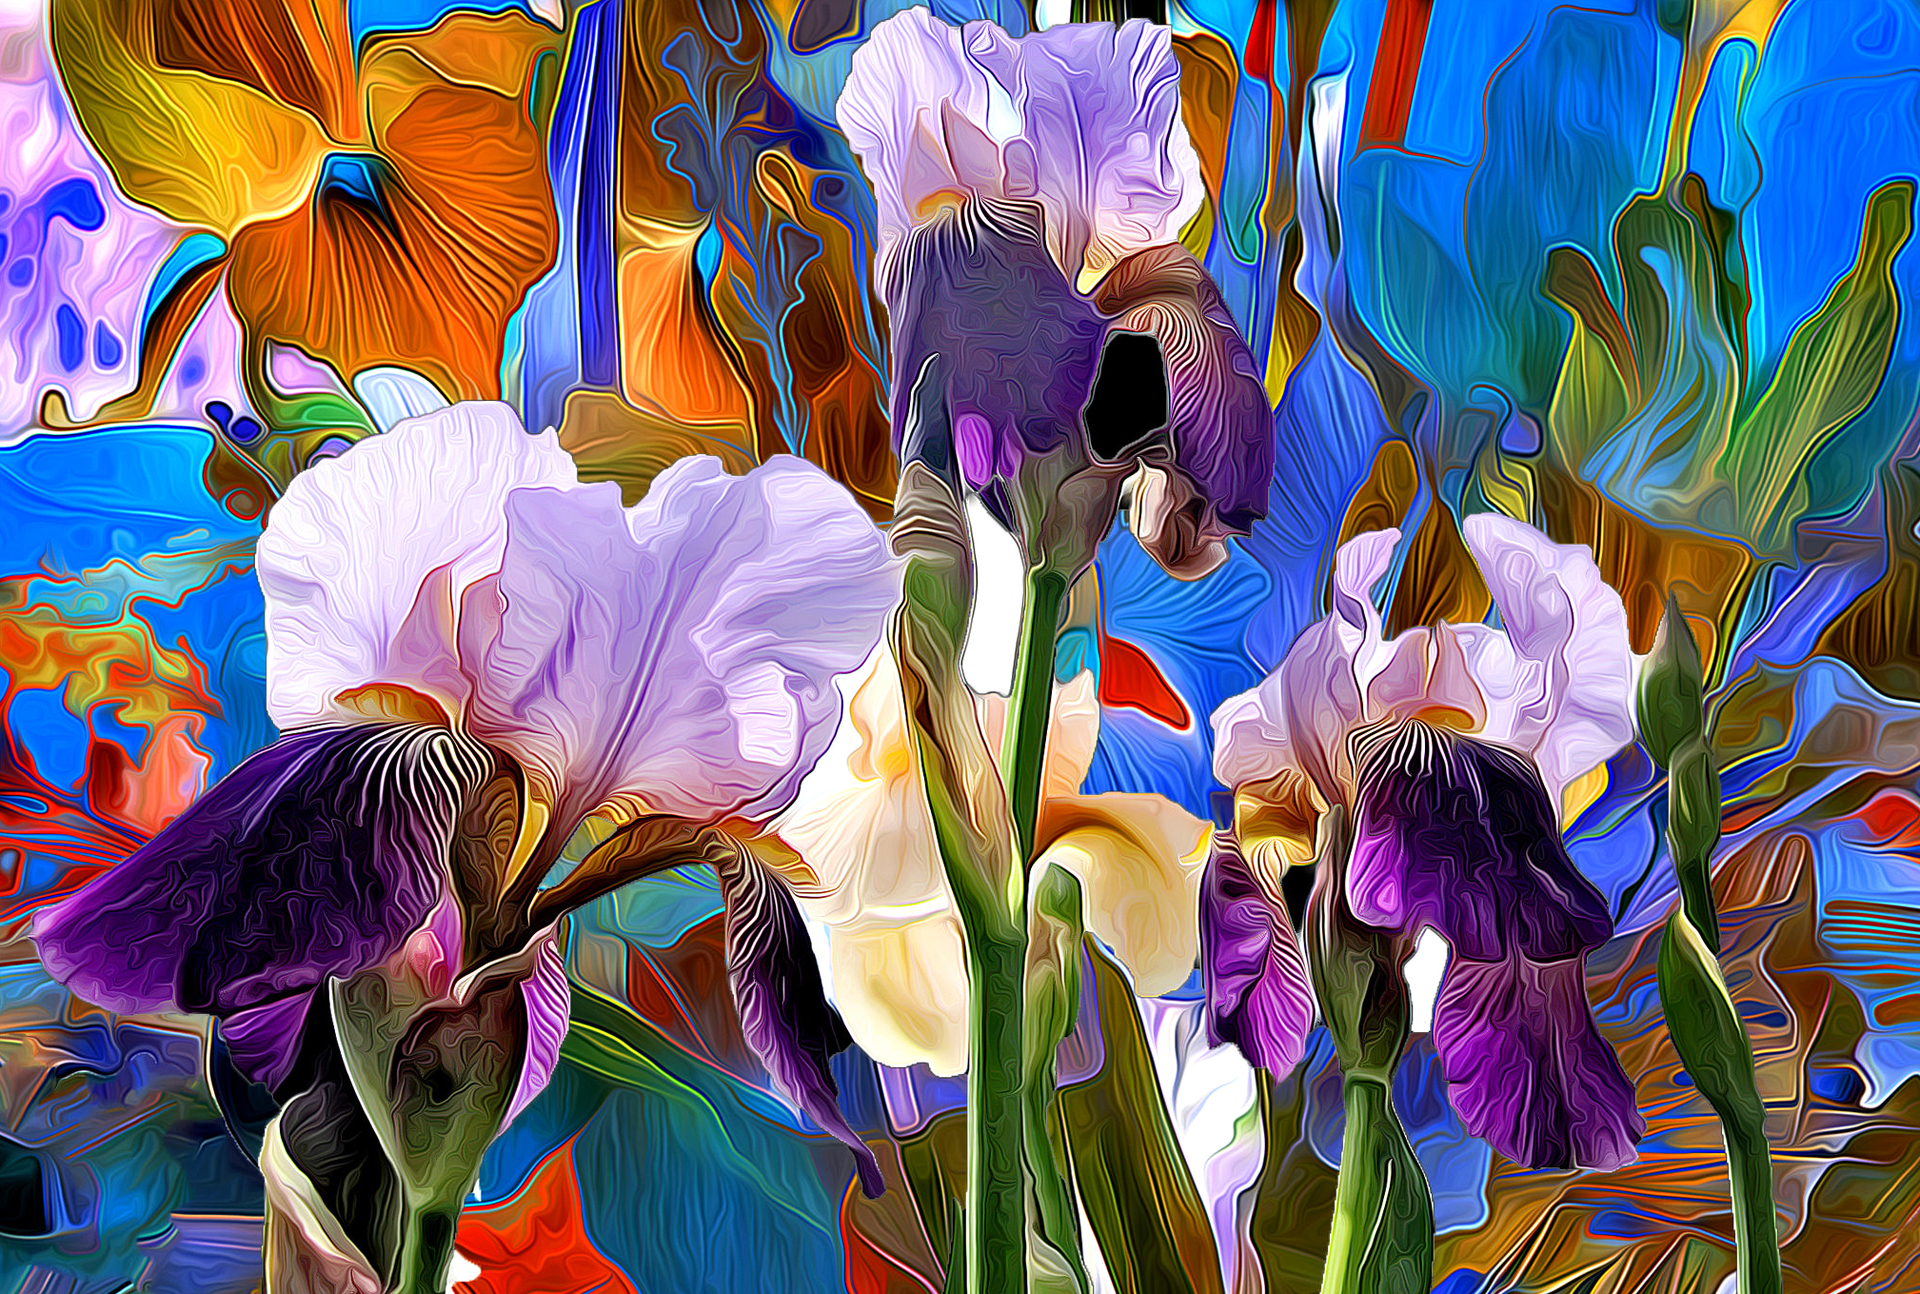 Painting iris flowers image collections flower wallpaper hd iris flower paintings images flower wallpaper hd flower abstract paintings izmirmasajfo izmirmasajfo izmirmasajfo